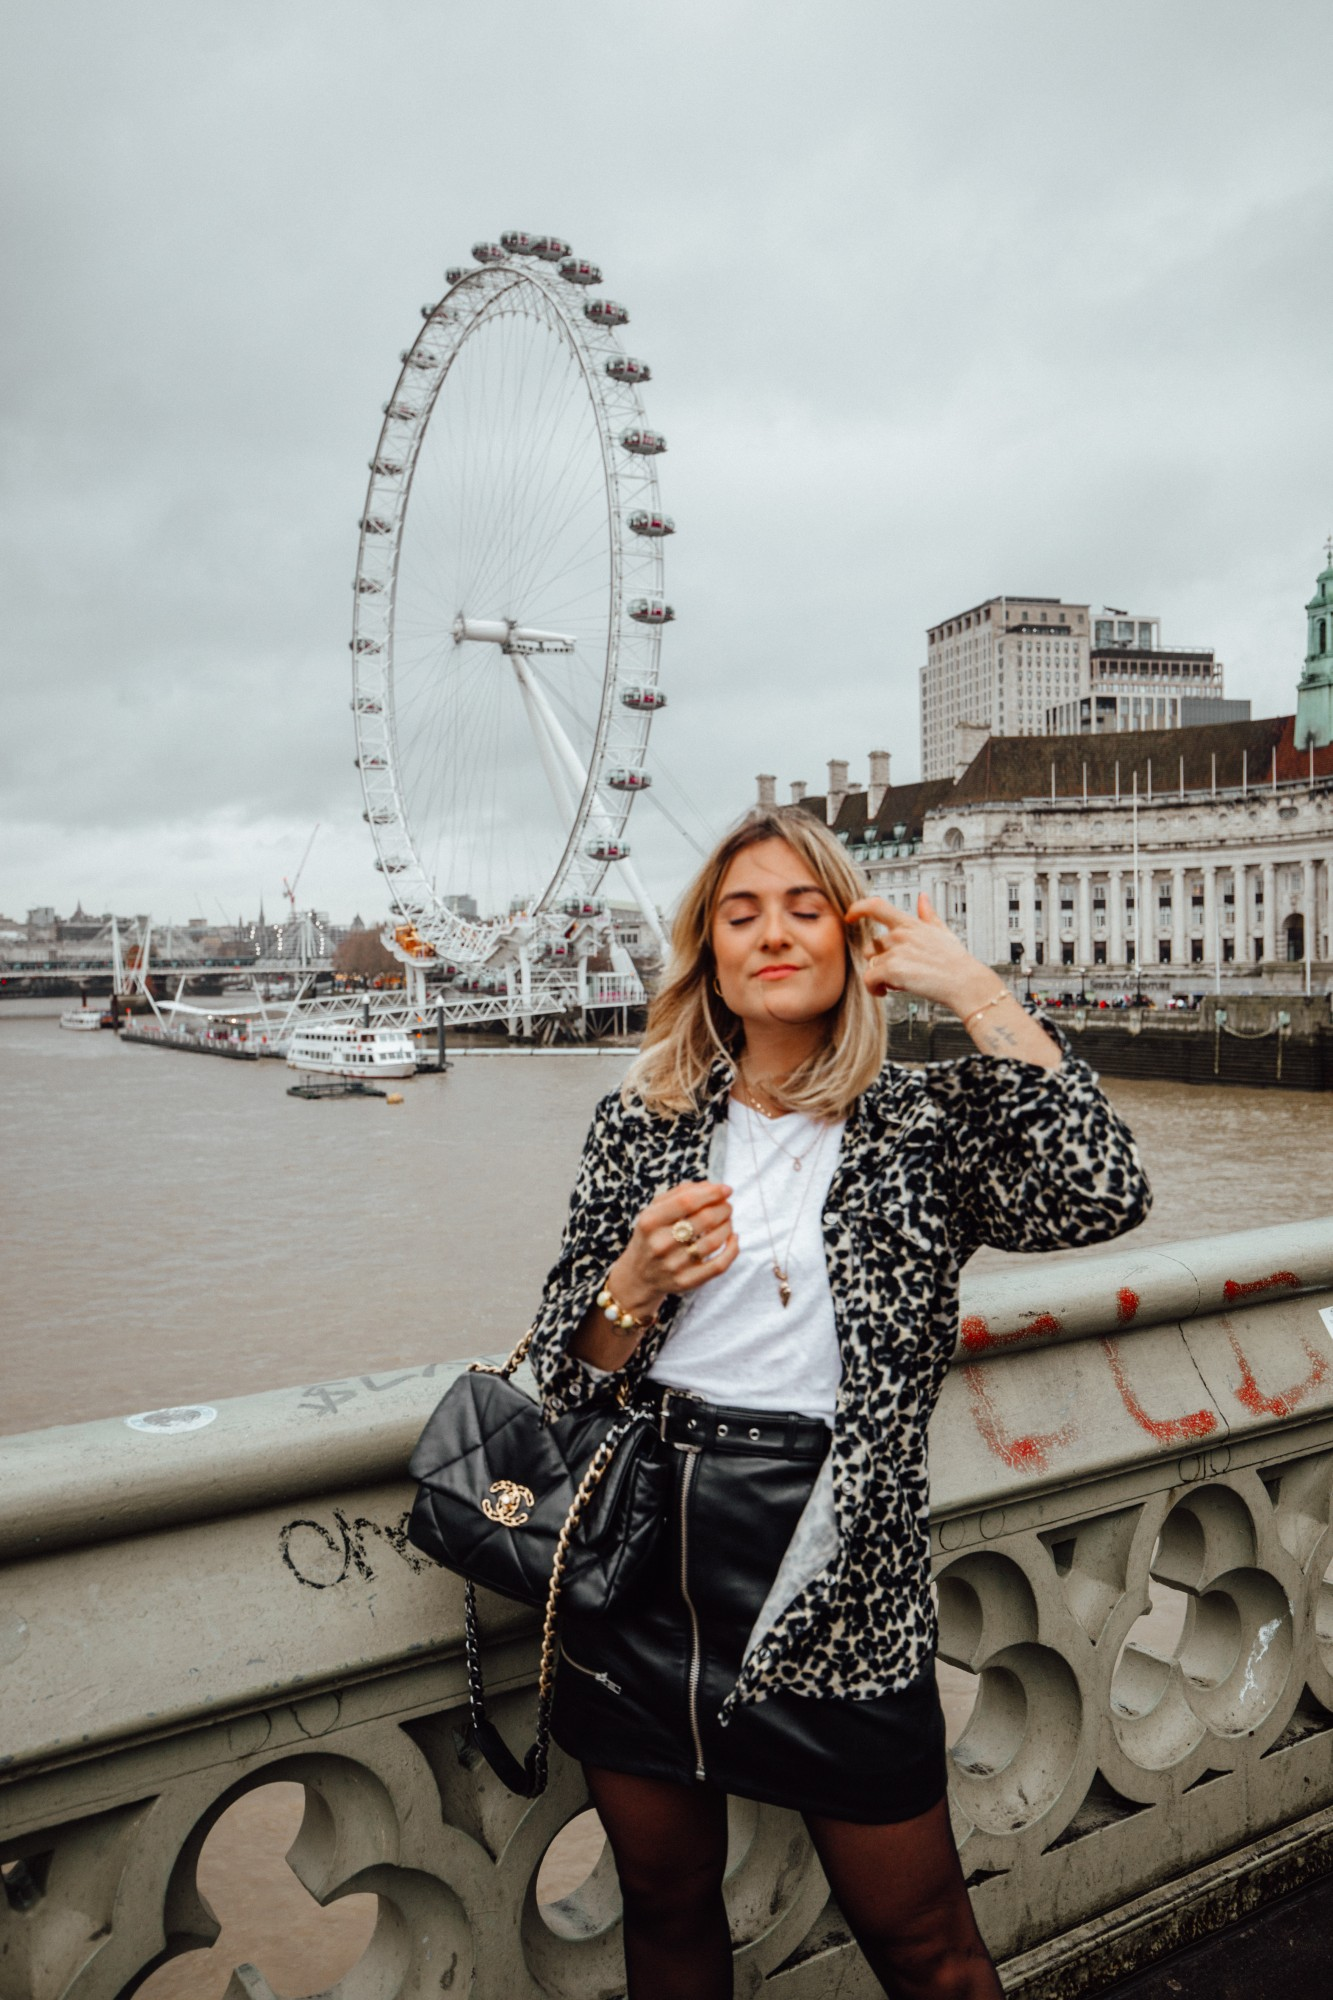 Visiter London Eye Londres - Blondie Baby blog voyages